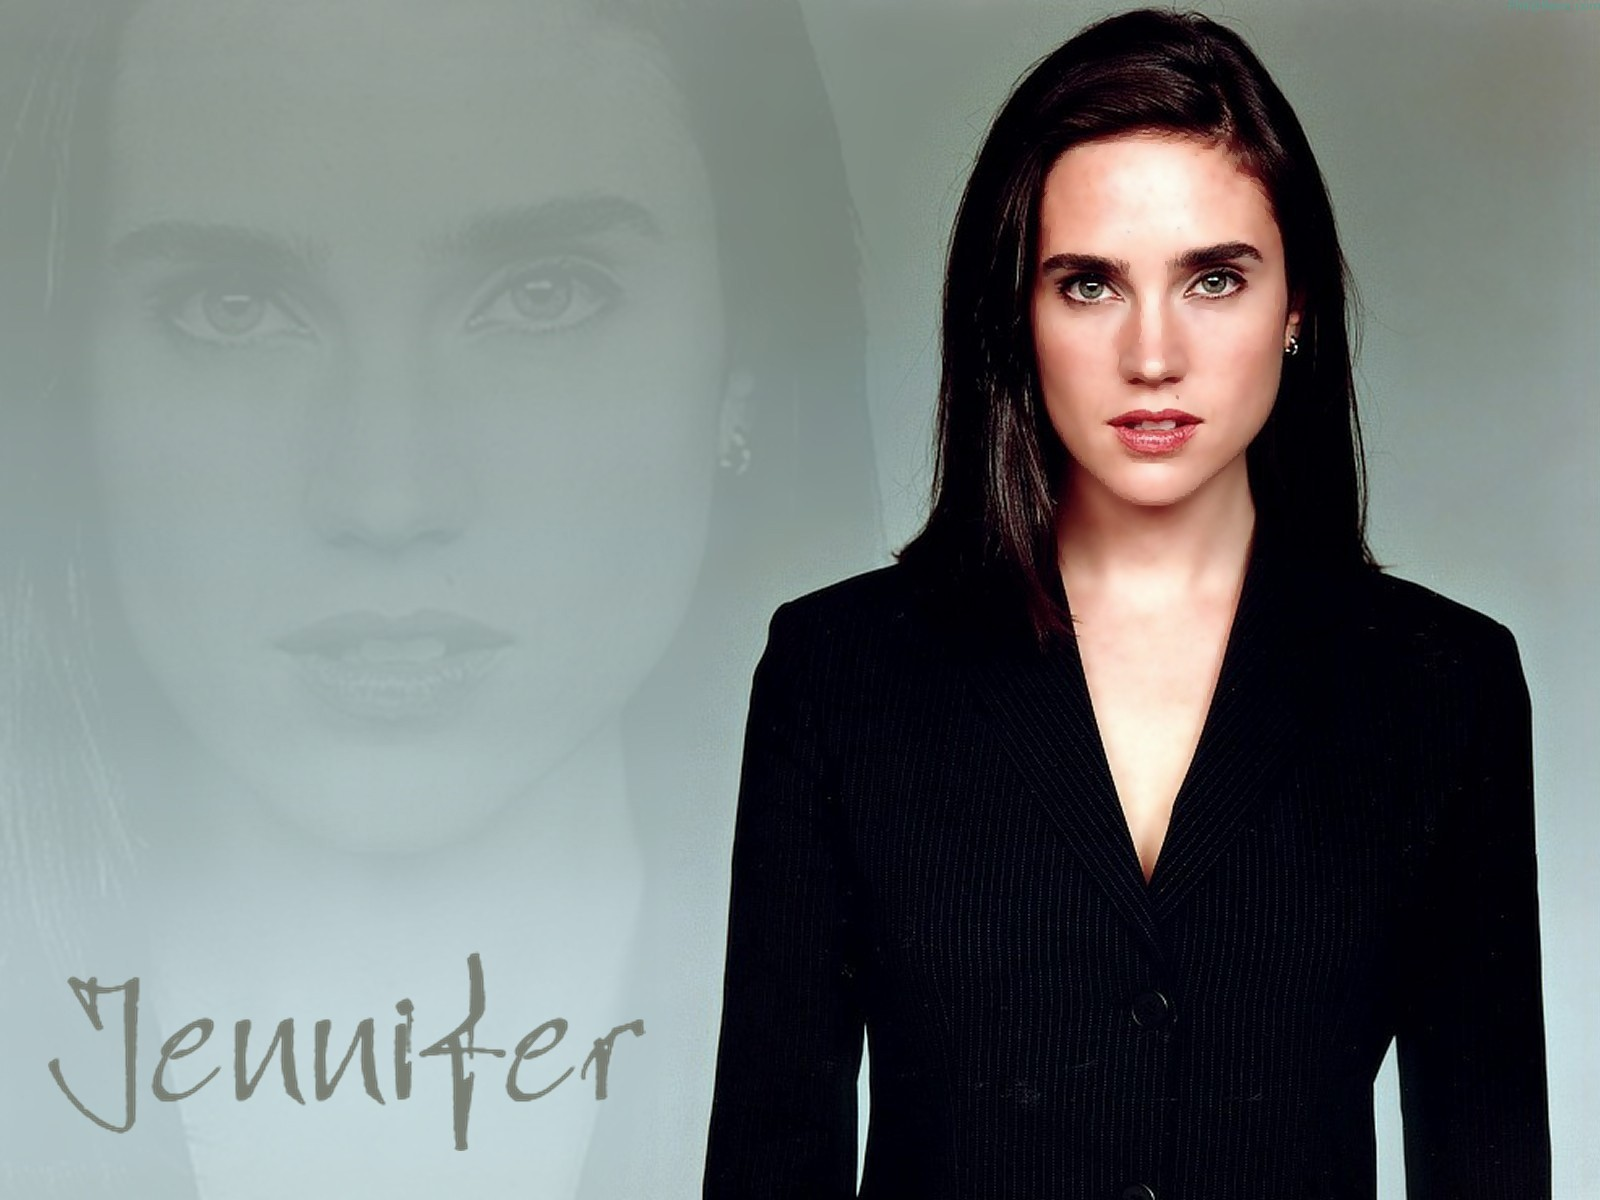 1600x1200 - Jennifer Connelly Wallpapers 9